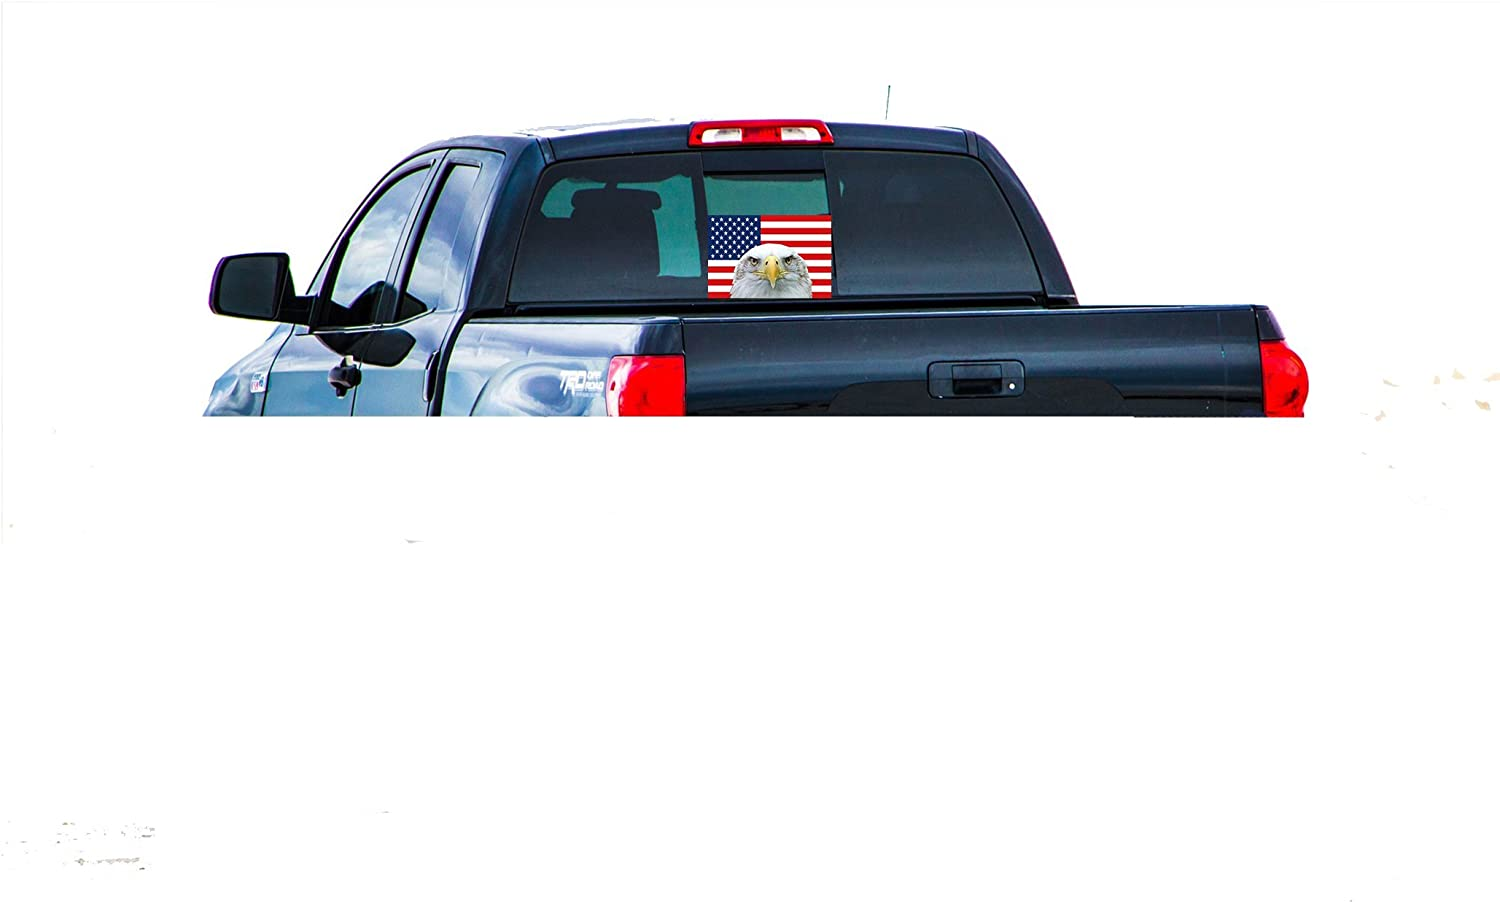 Rogue River Tactical Large American Eagle US Flag Car Decal USA Patriotic Stars and Stripes Auto Bumper Sticker Vinyl Window Truck RV SUV Boat Support US Military